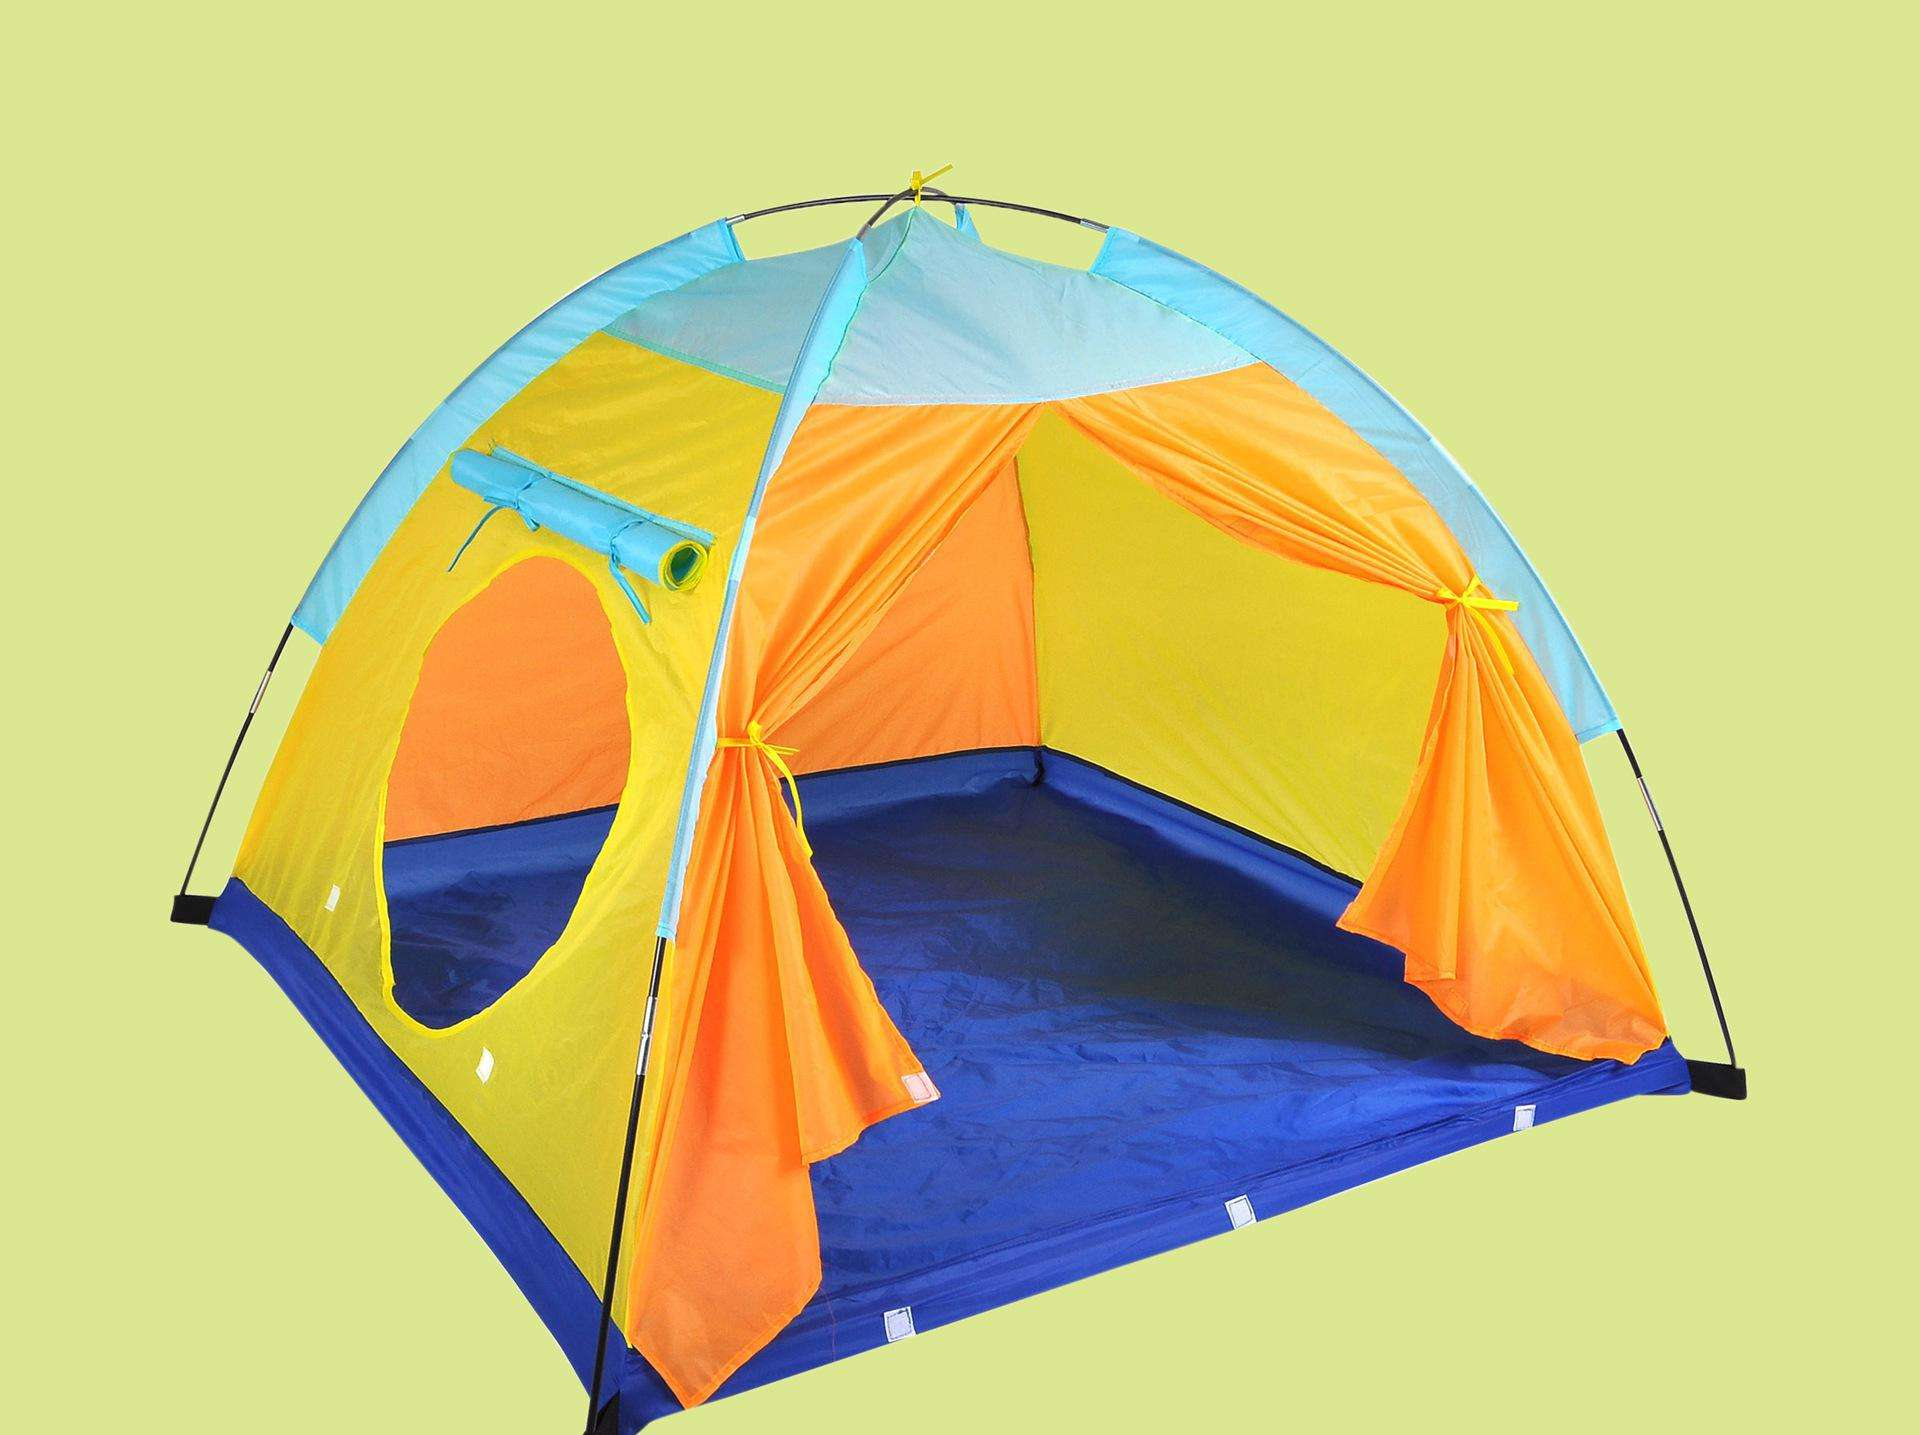 Portable kids playing tent home sleeping orange